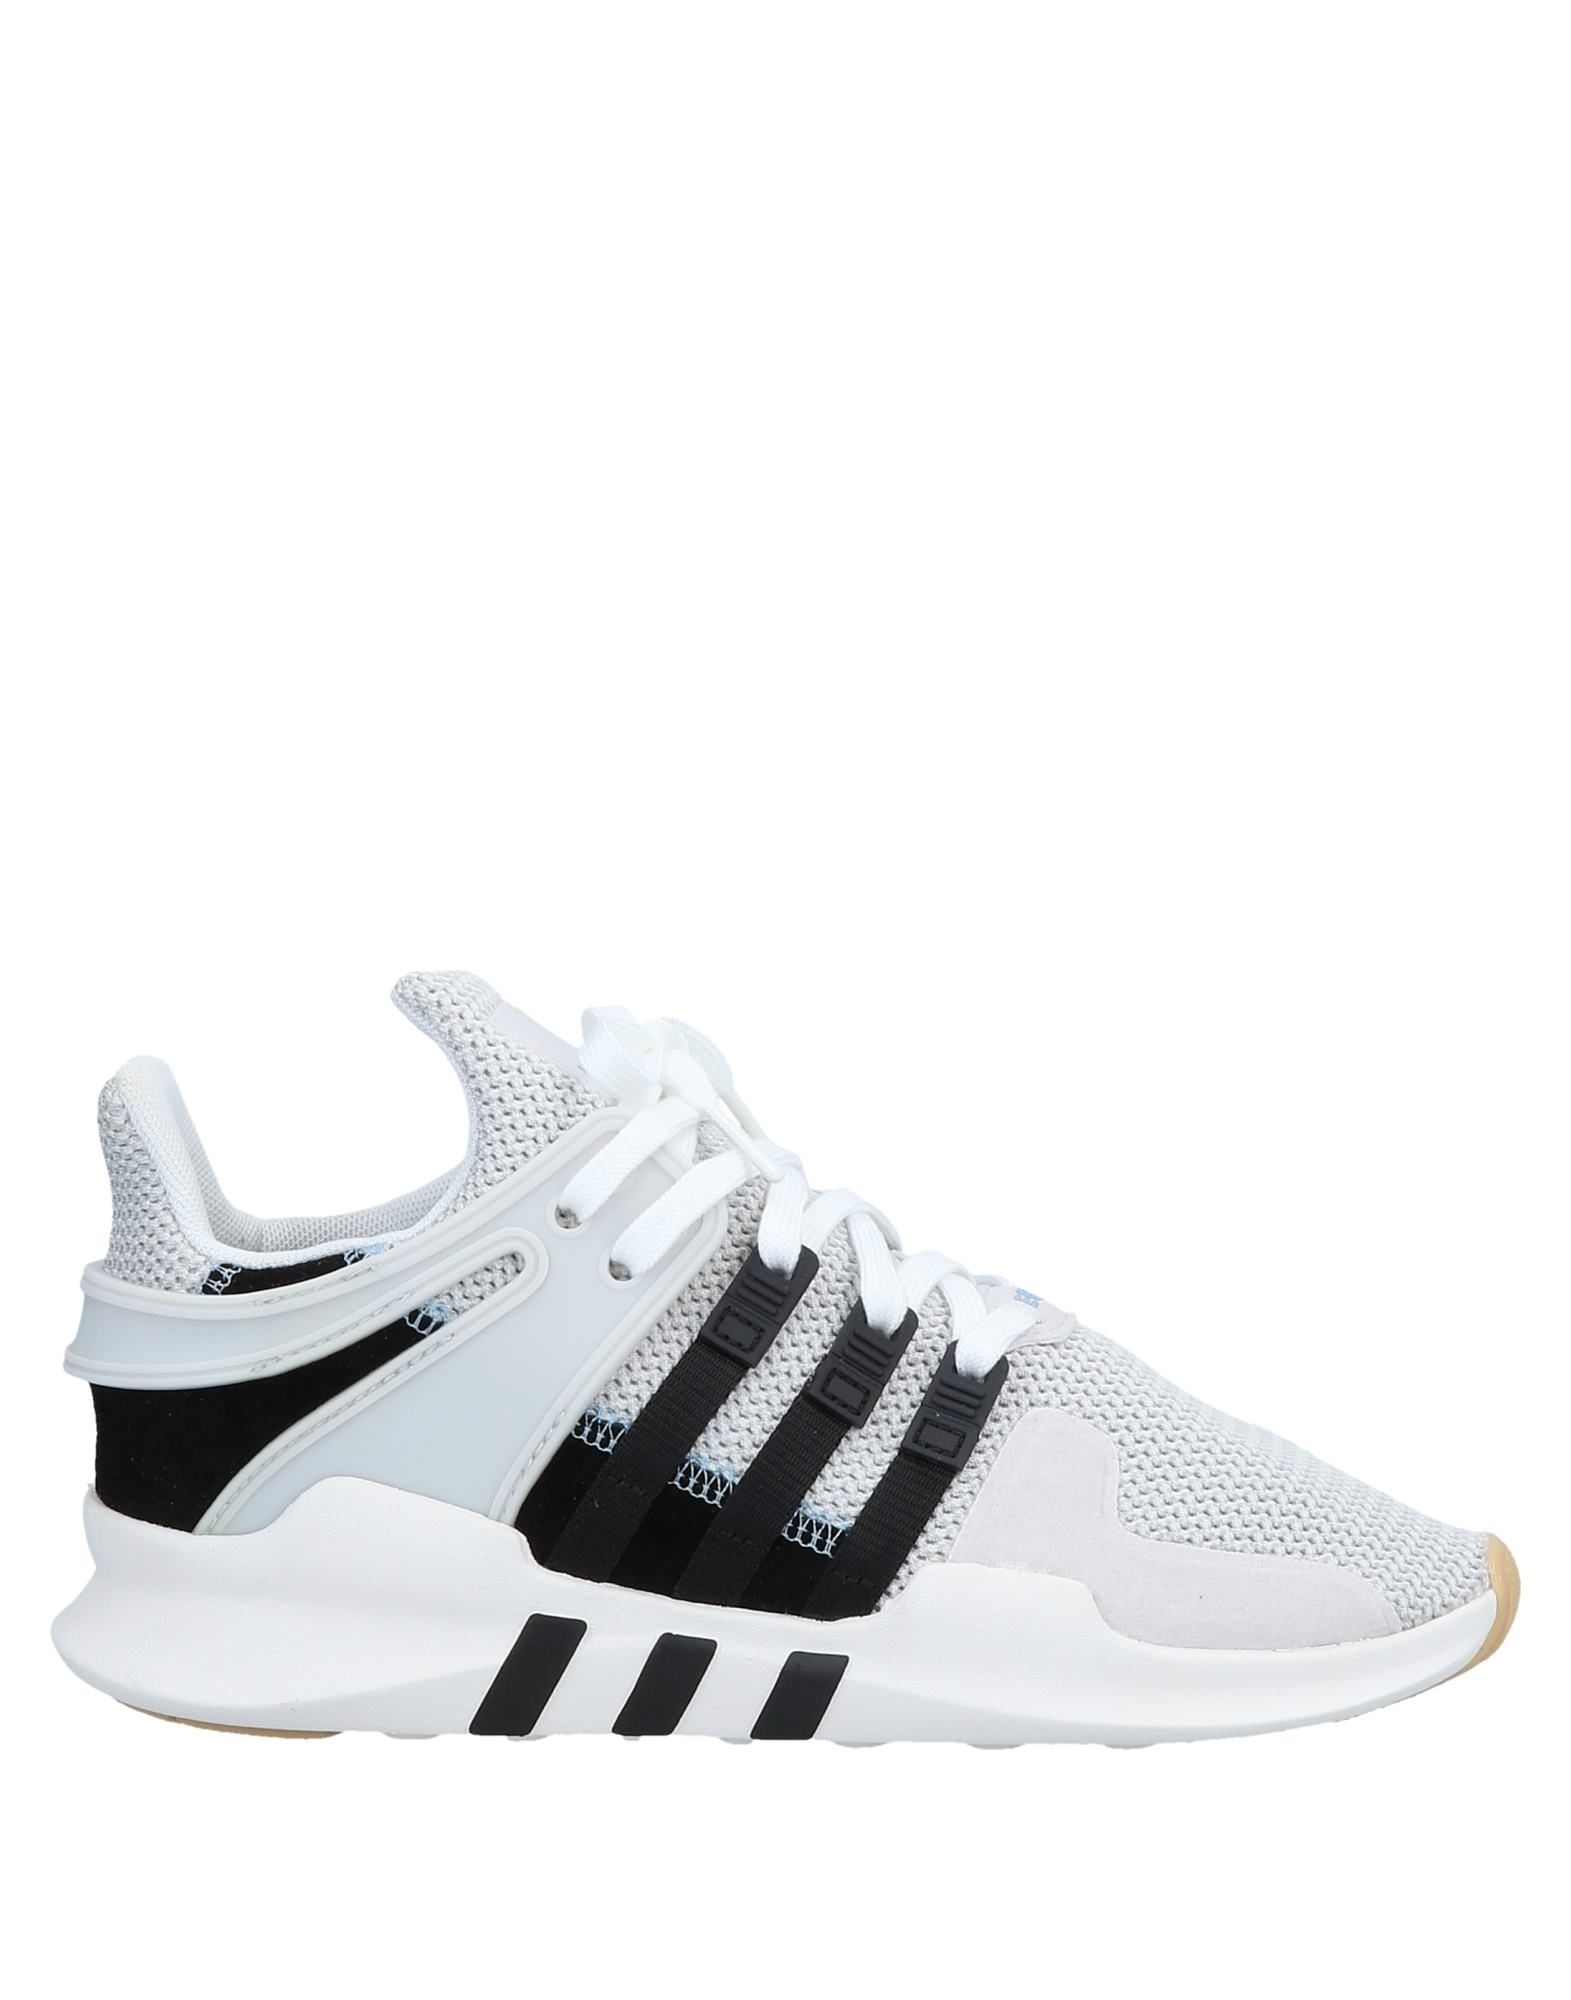 Adidas Originals Sneakers - Women Adidas Originals Sneakers - online on  Australia - Sneakers 11569978OX 062750